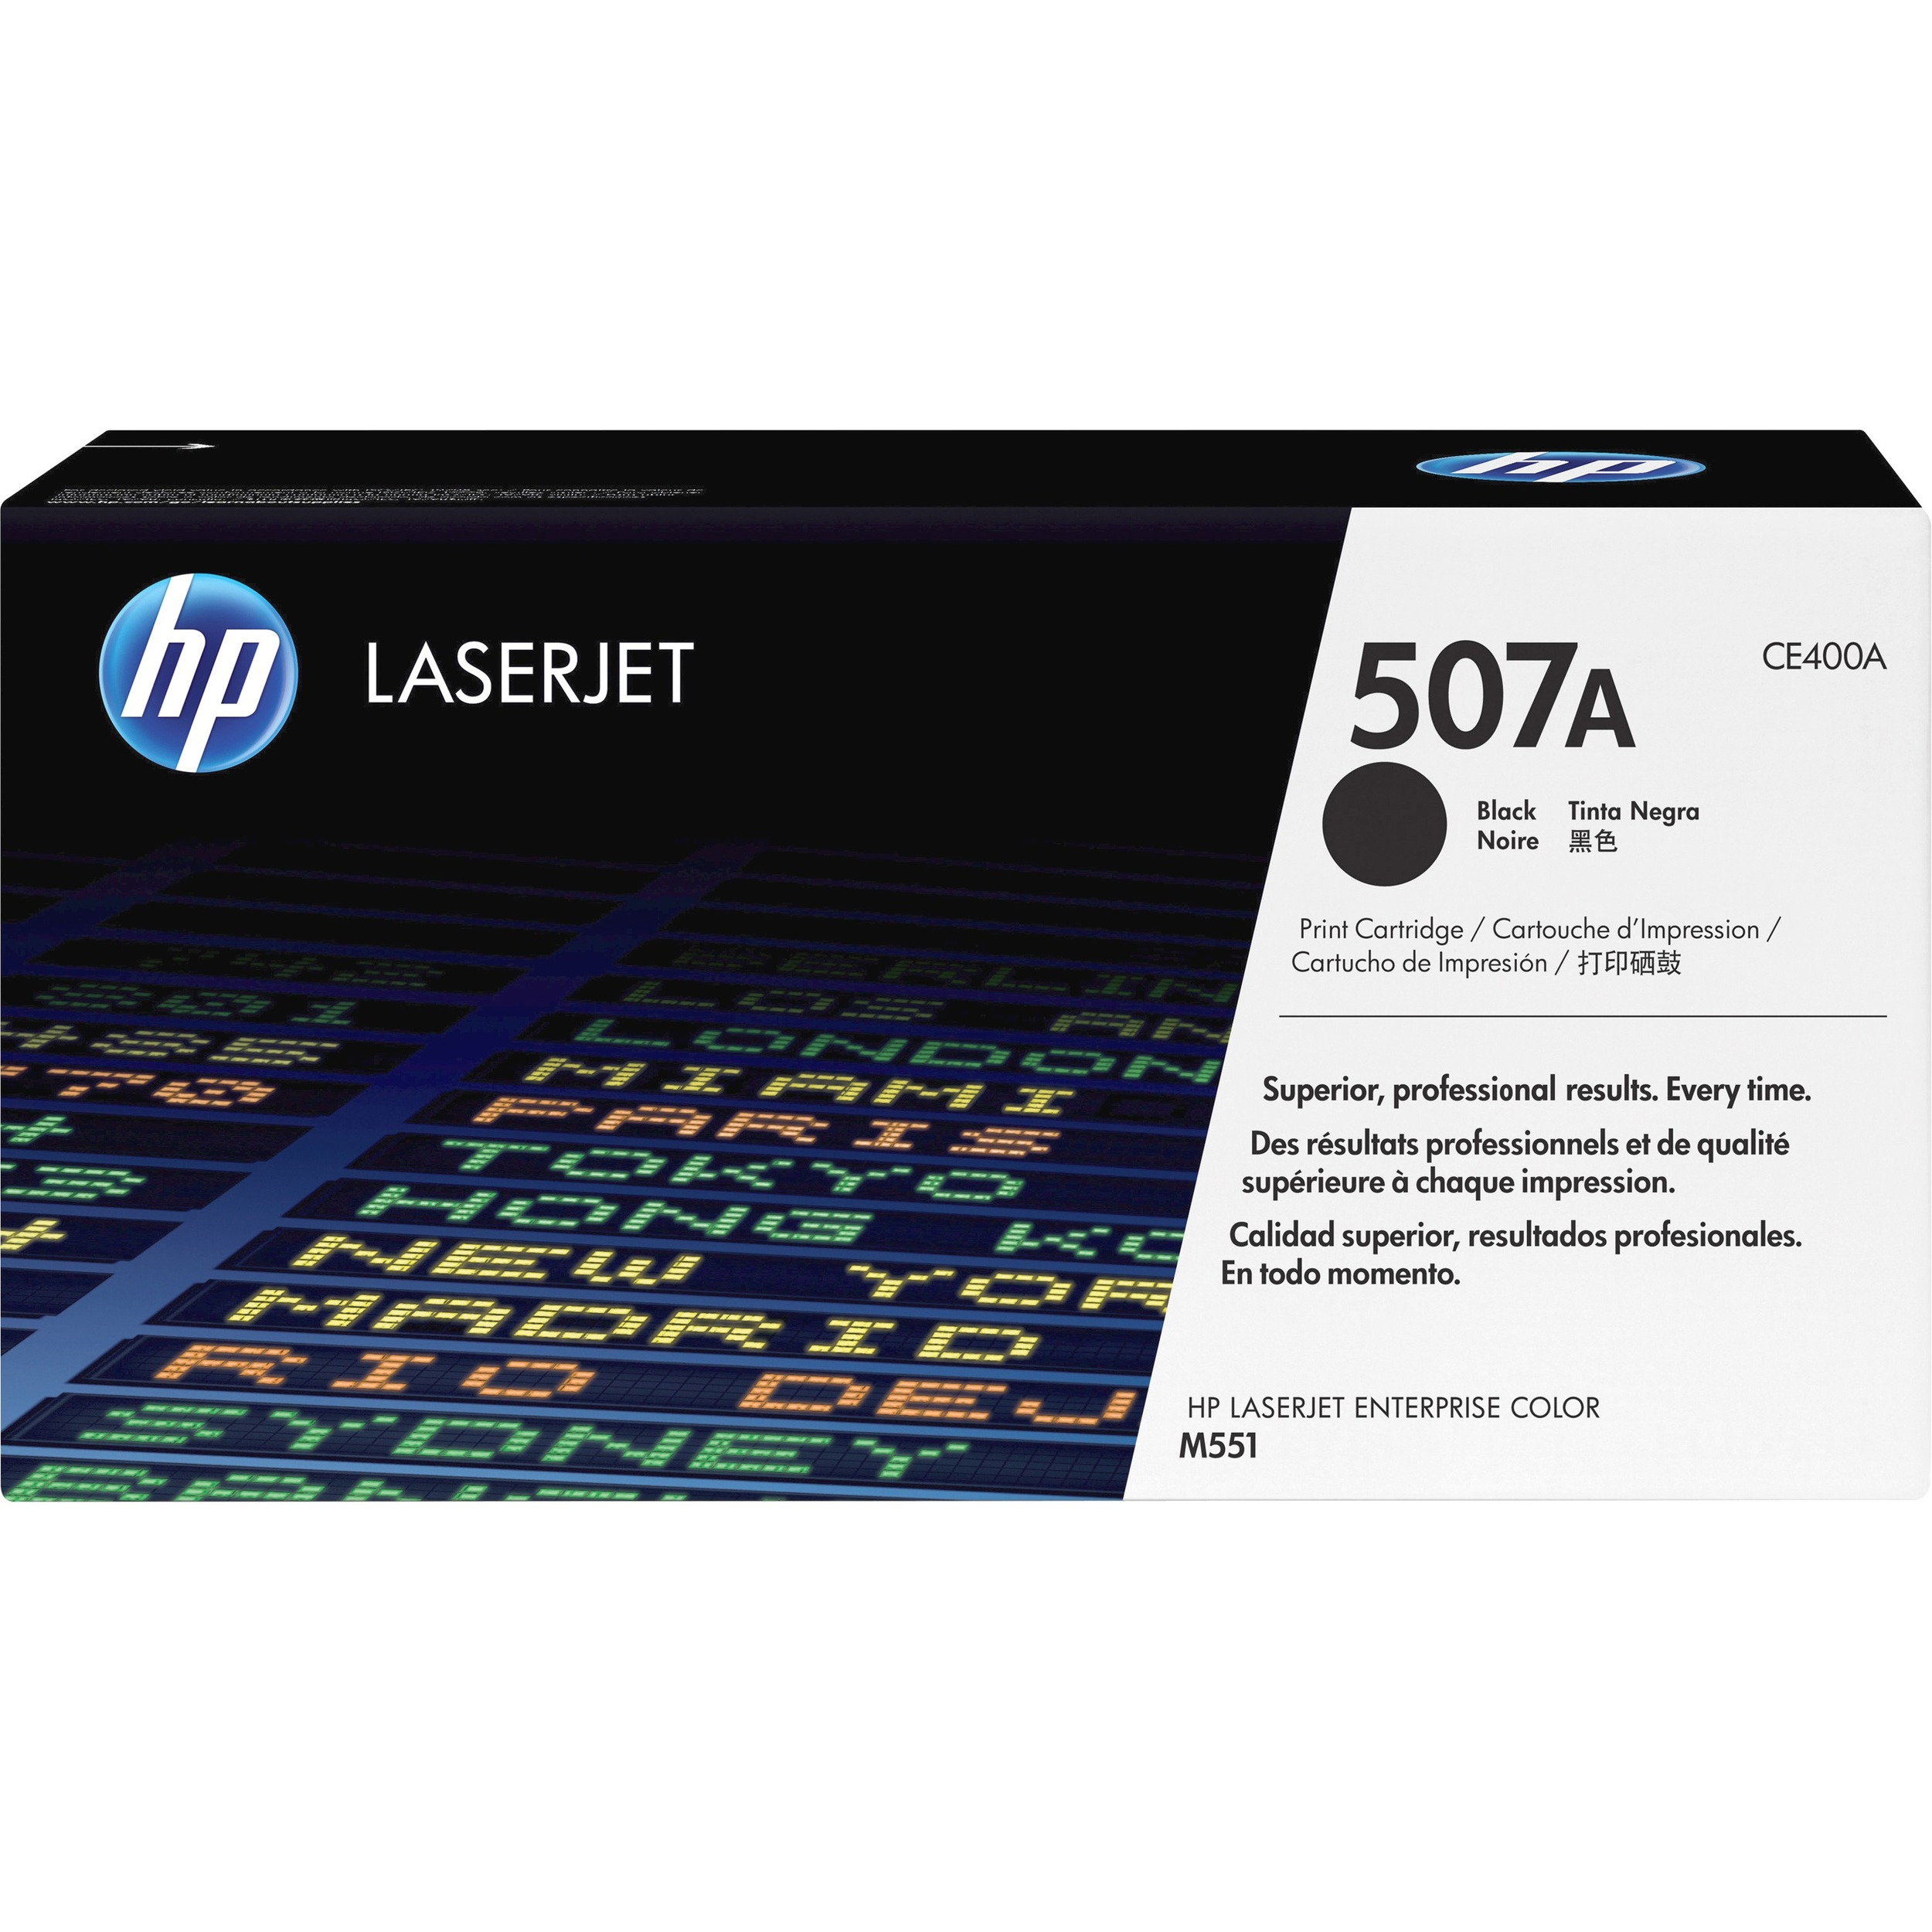 HP 507A Toner Cartridge - Black - Laser - 5500 Page - 1 Pack